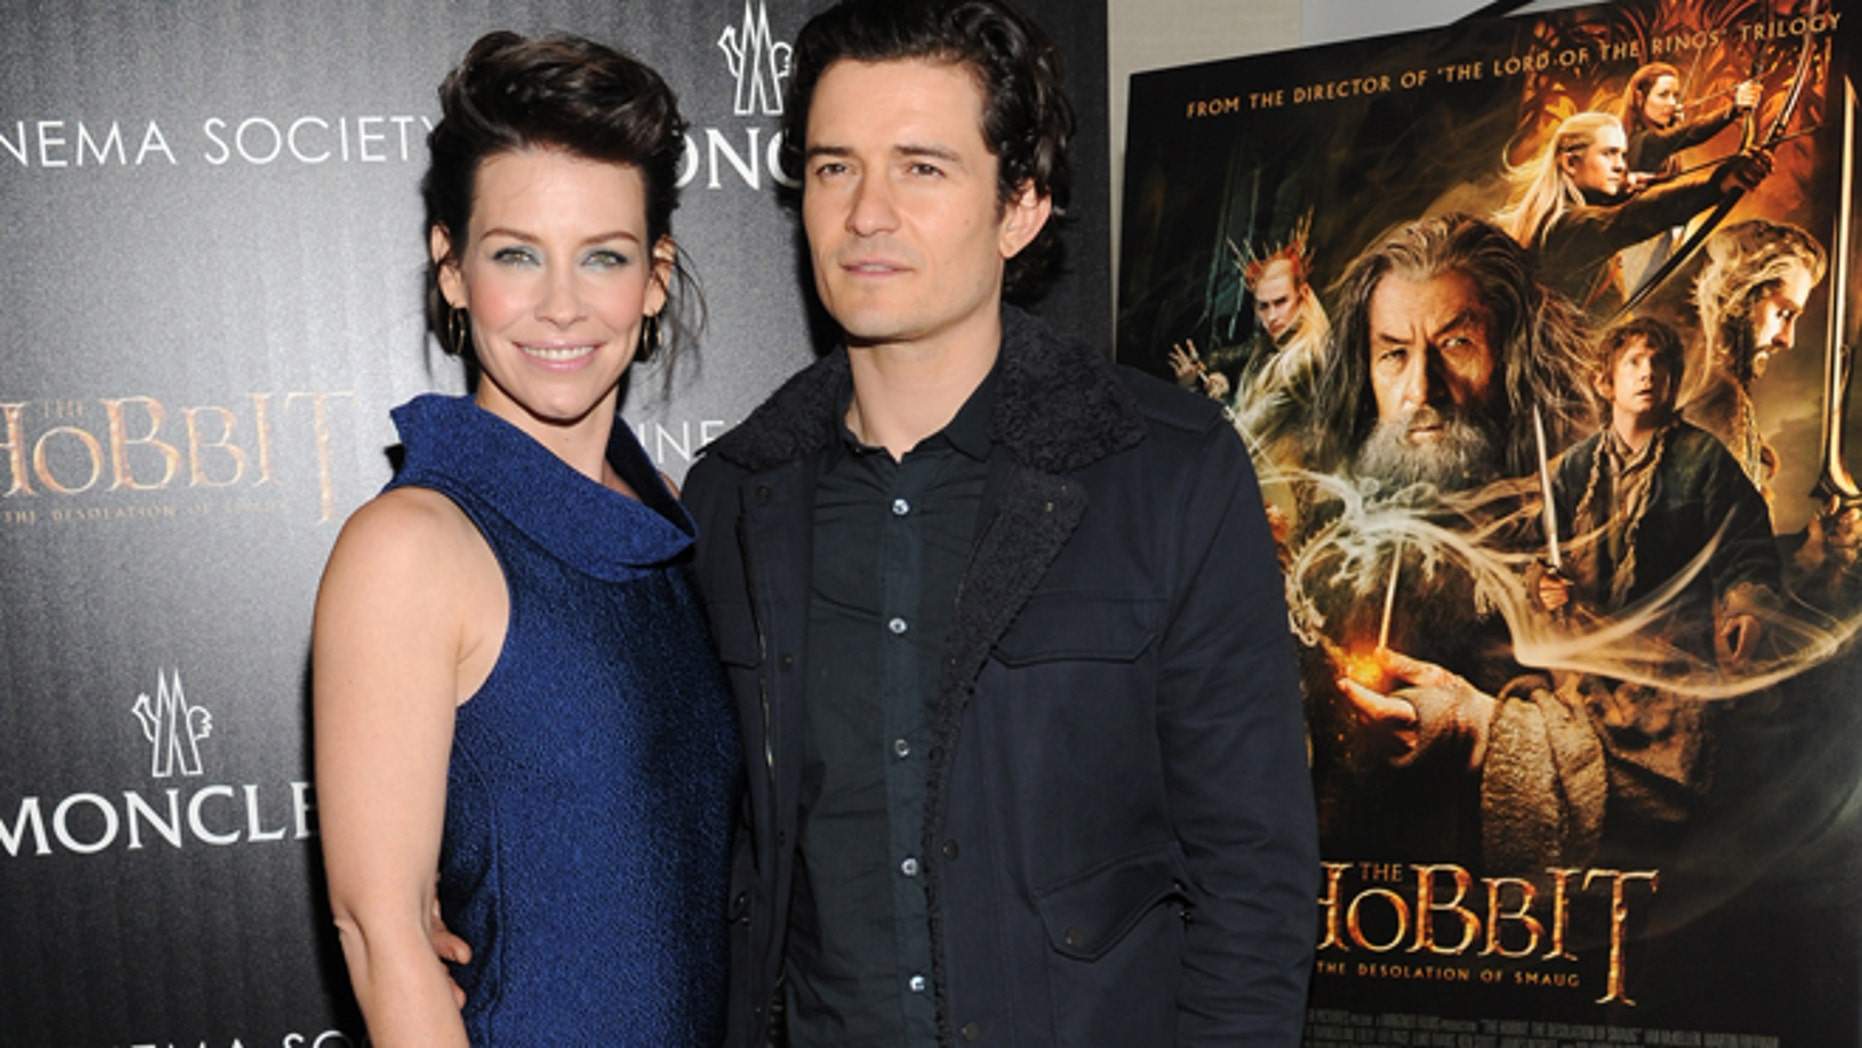 """Dec. 11, 2013: Actors Evangeline Lilly and Orlando Bloom attend a special screening of """"The Hobbit: The Desolation of Smaug"""" hosted by New Line Cinema and Metro-Goldwyn-Mayer Pictures with The Cinema Society in New York."""